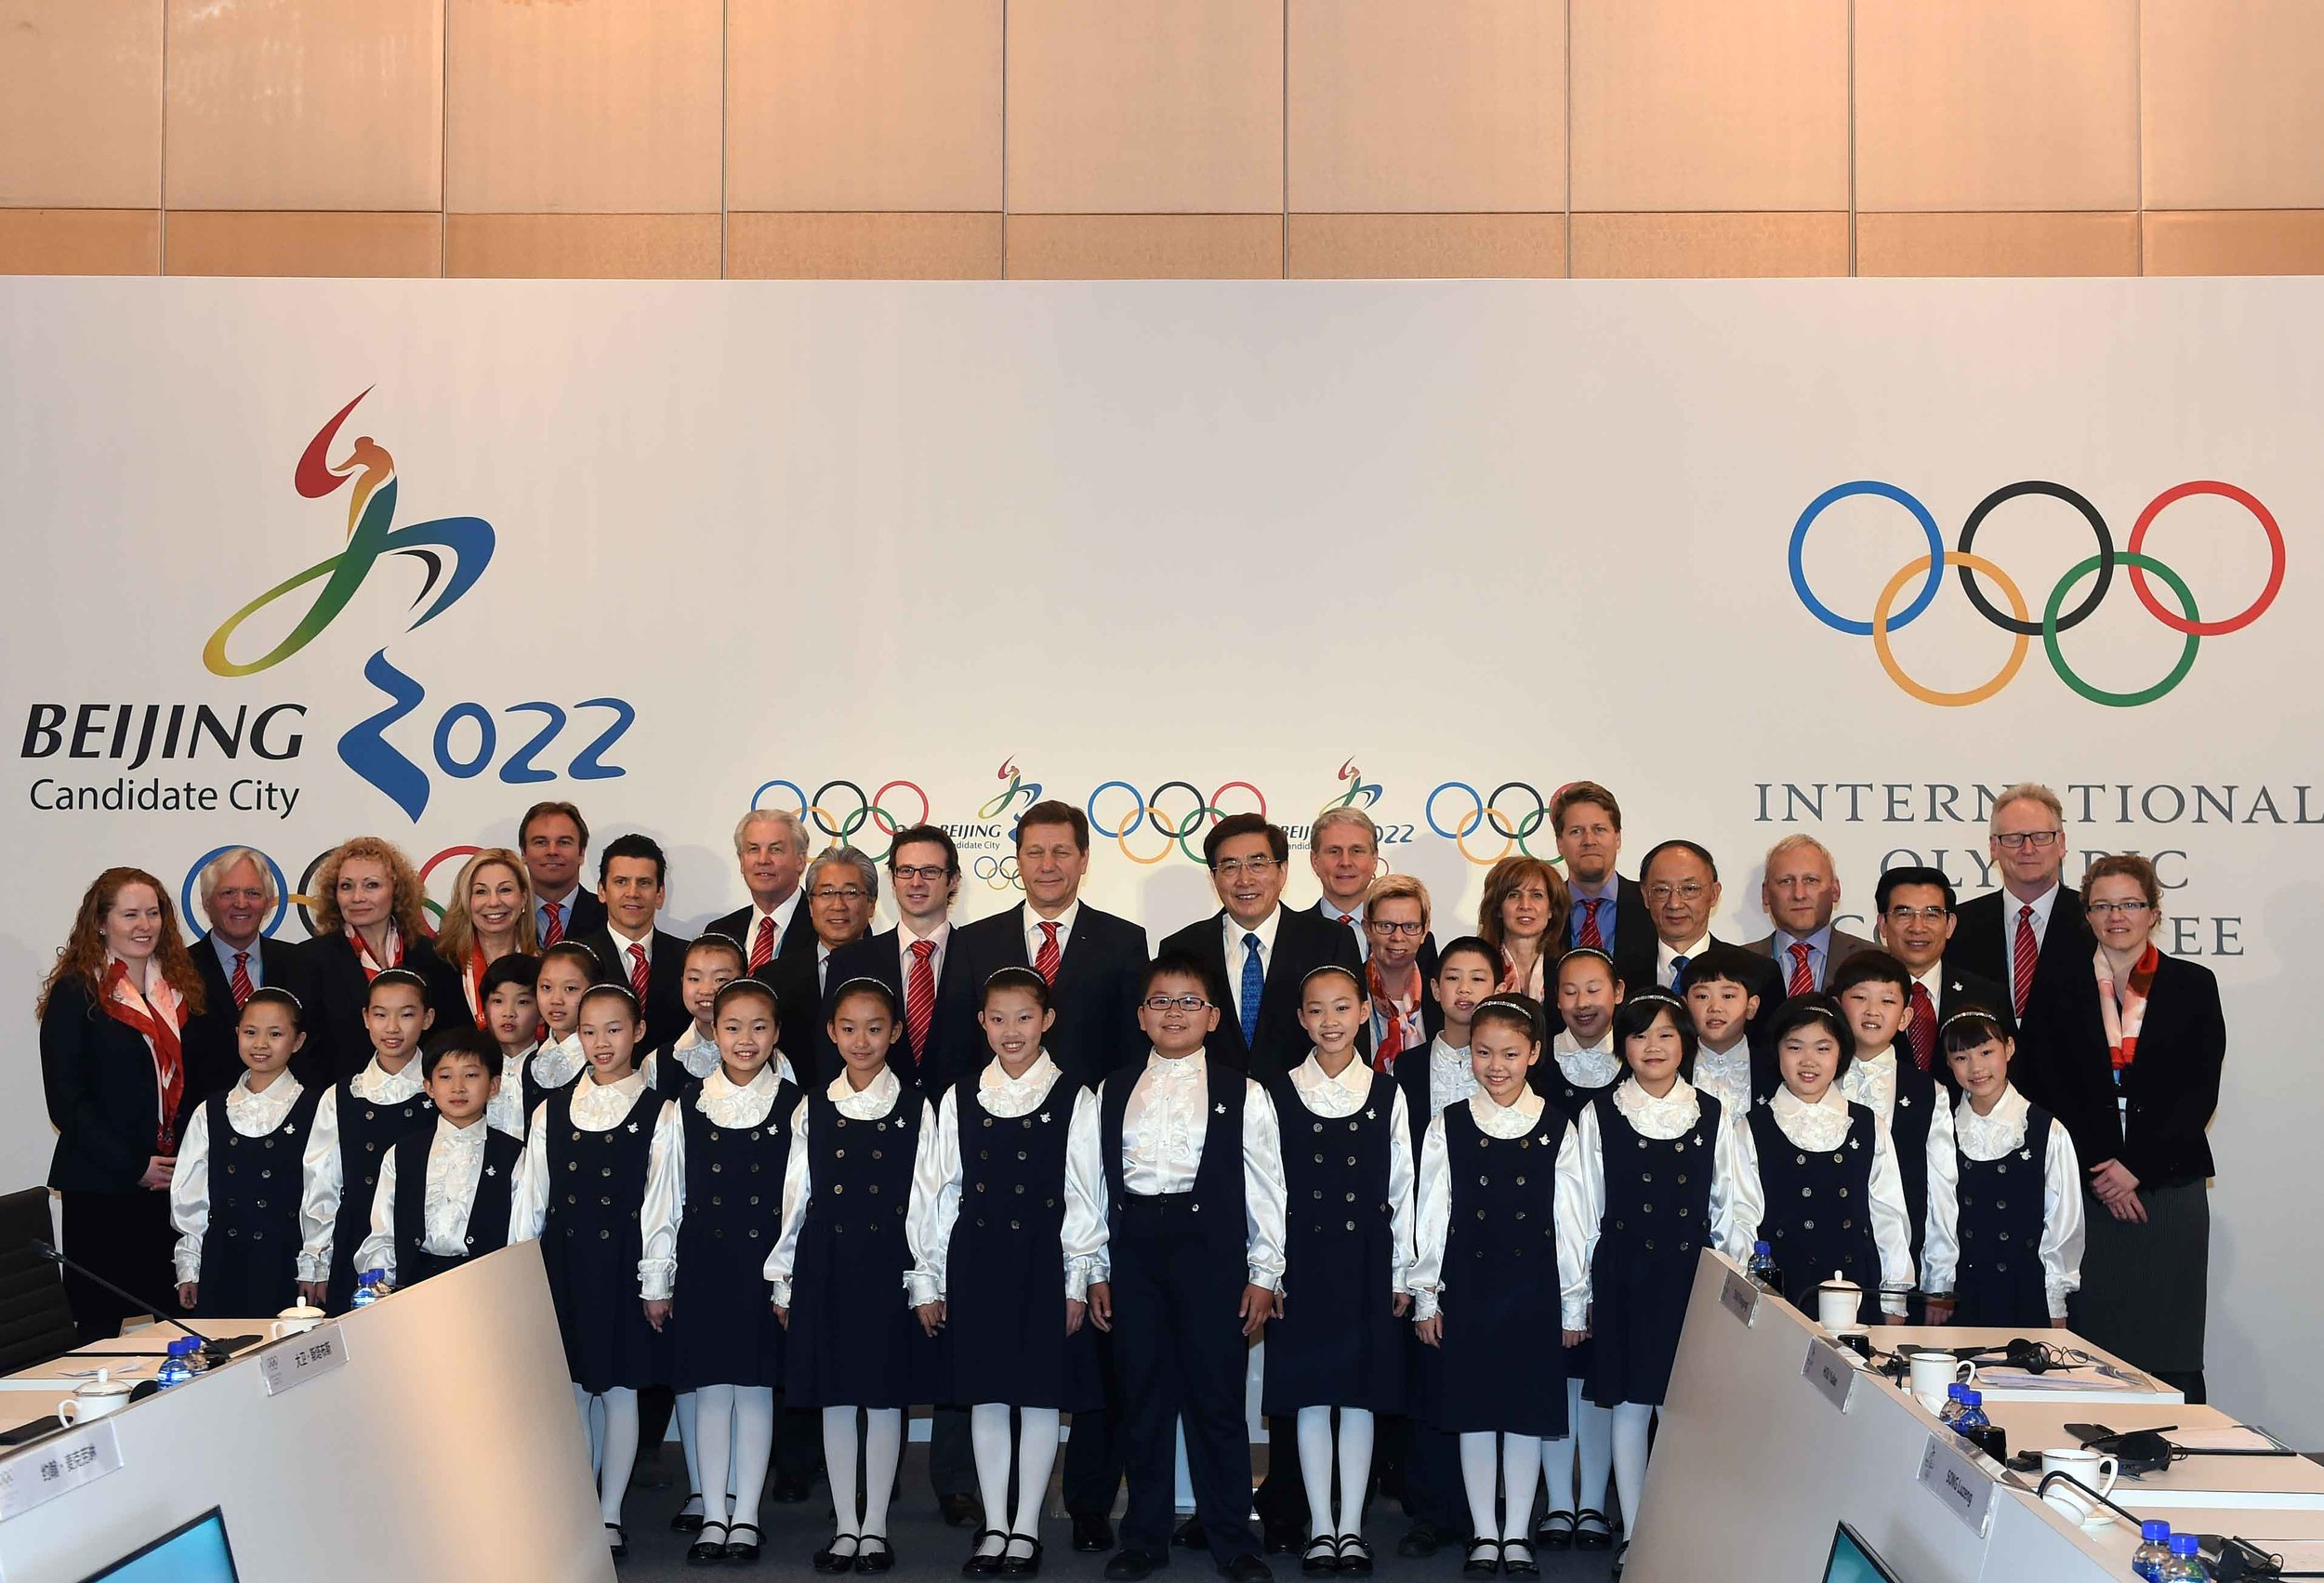 IOC-Evaluation-Commission-closing-ceremony-6-cBeijing2022.jpg